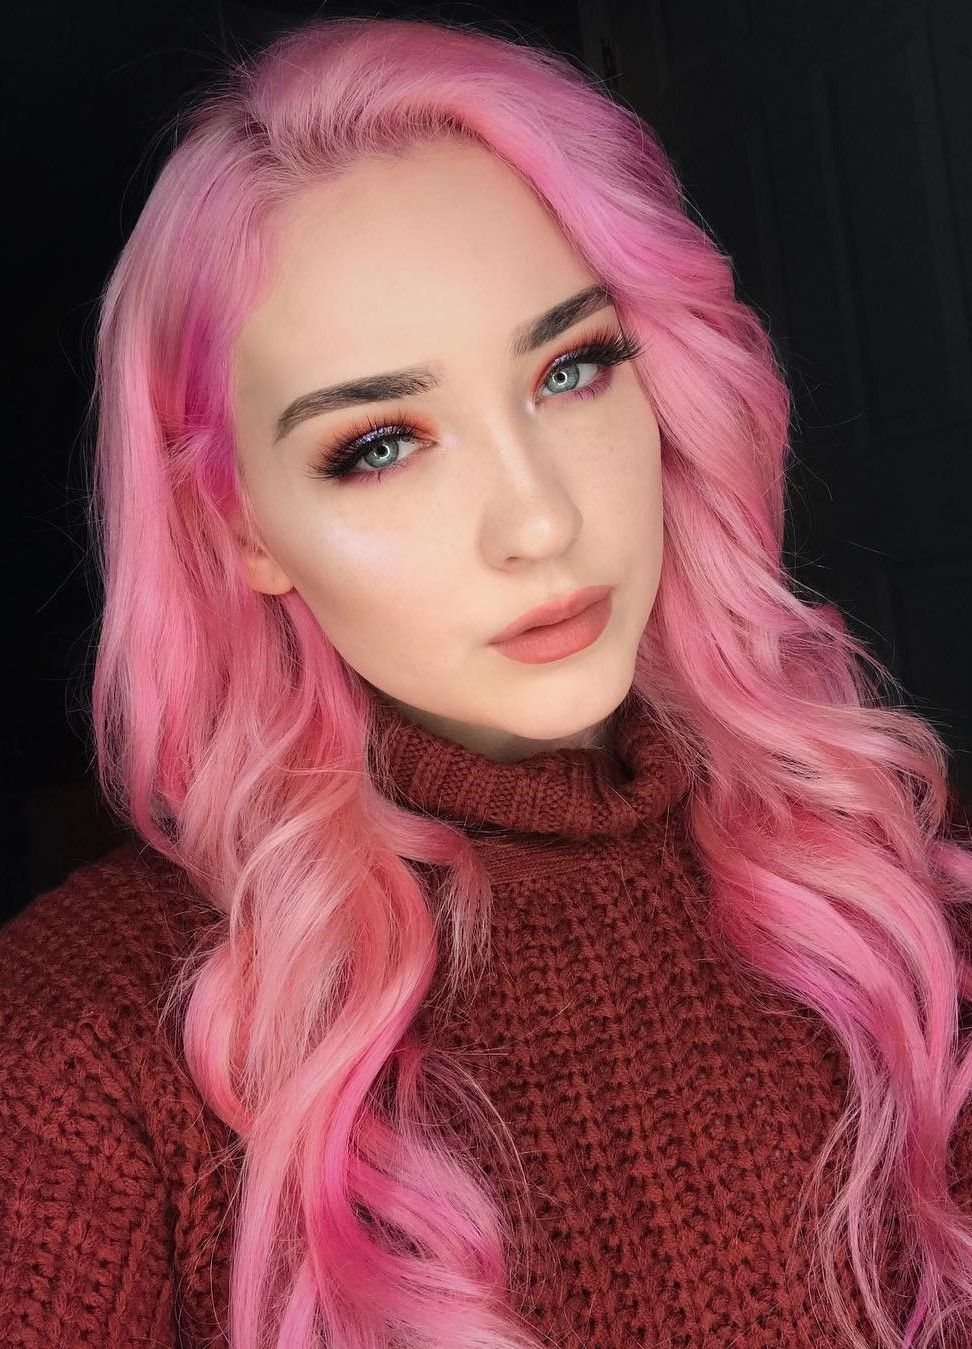 46 Amazing Makeup Looks To Try Cool Makeup Looks Makeup Looks Hair Color Pastel